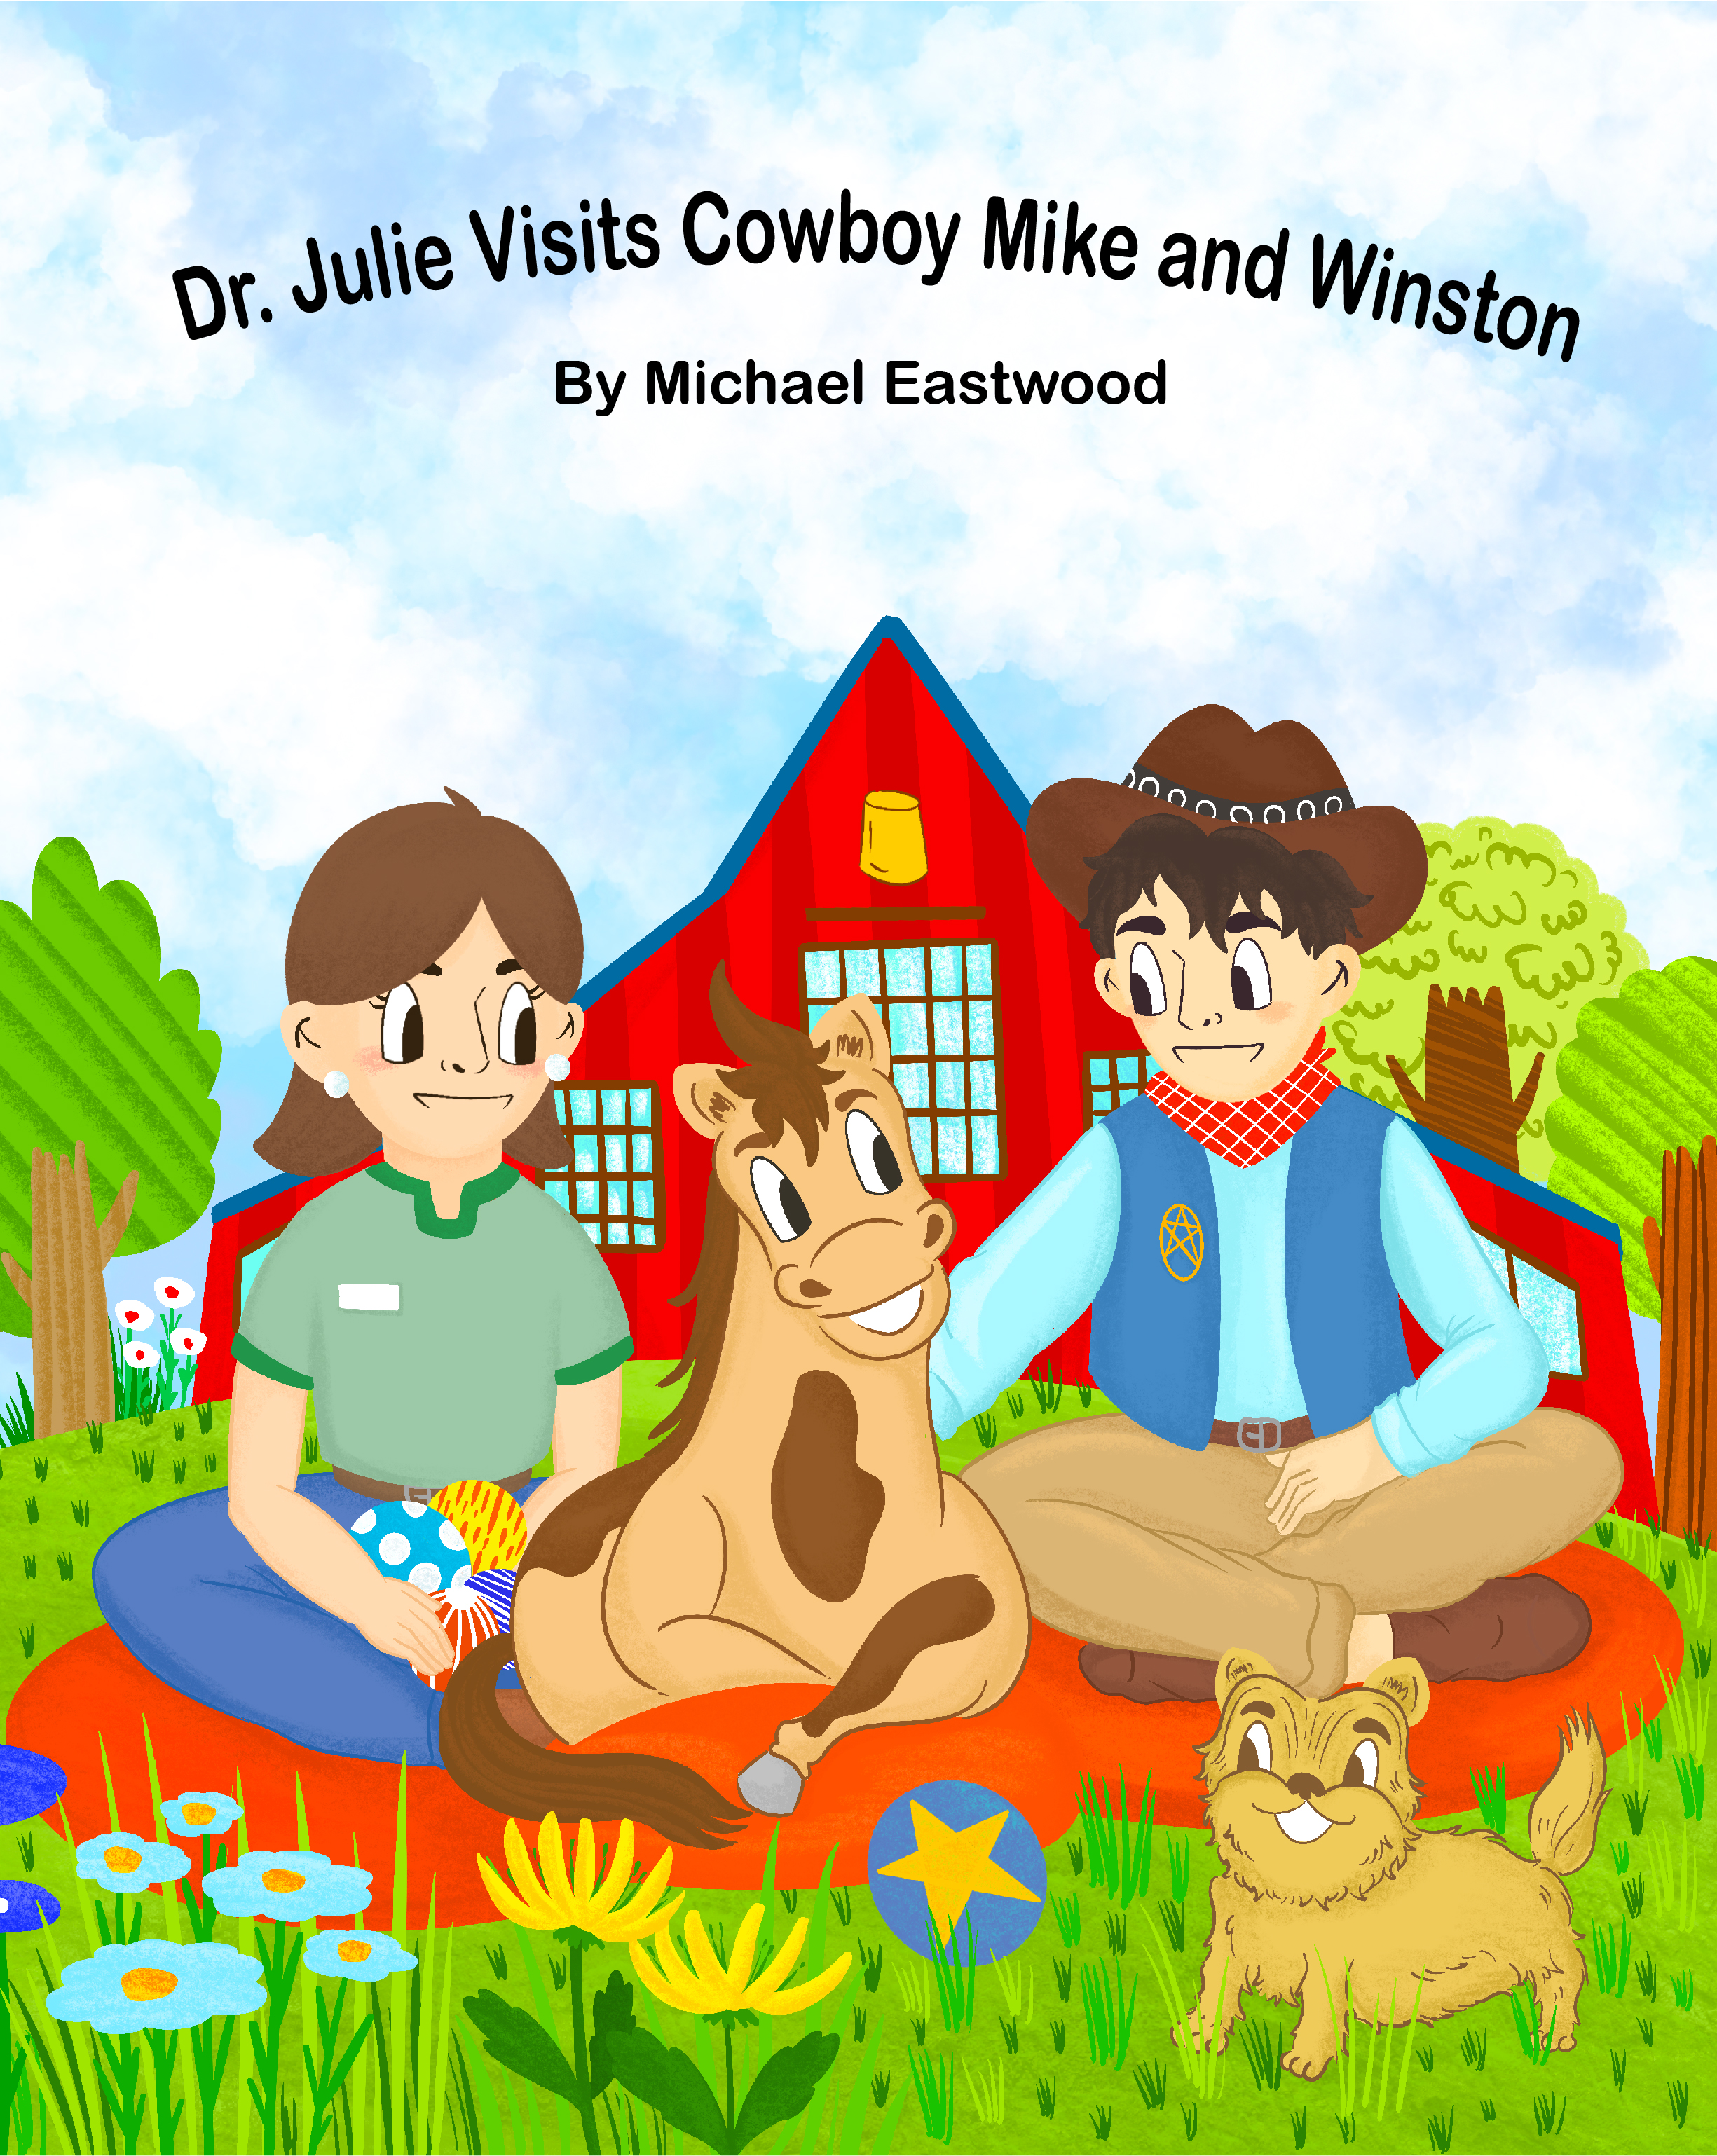 Dr. Julie Visits Cowboy Mike and Winston New Book is Now on Amazon.